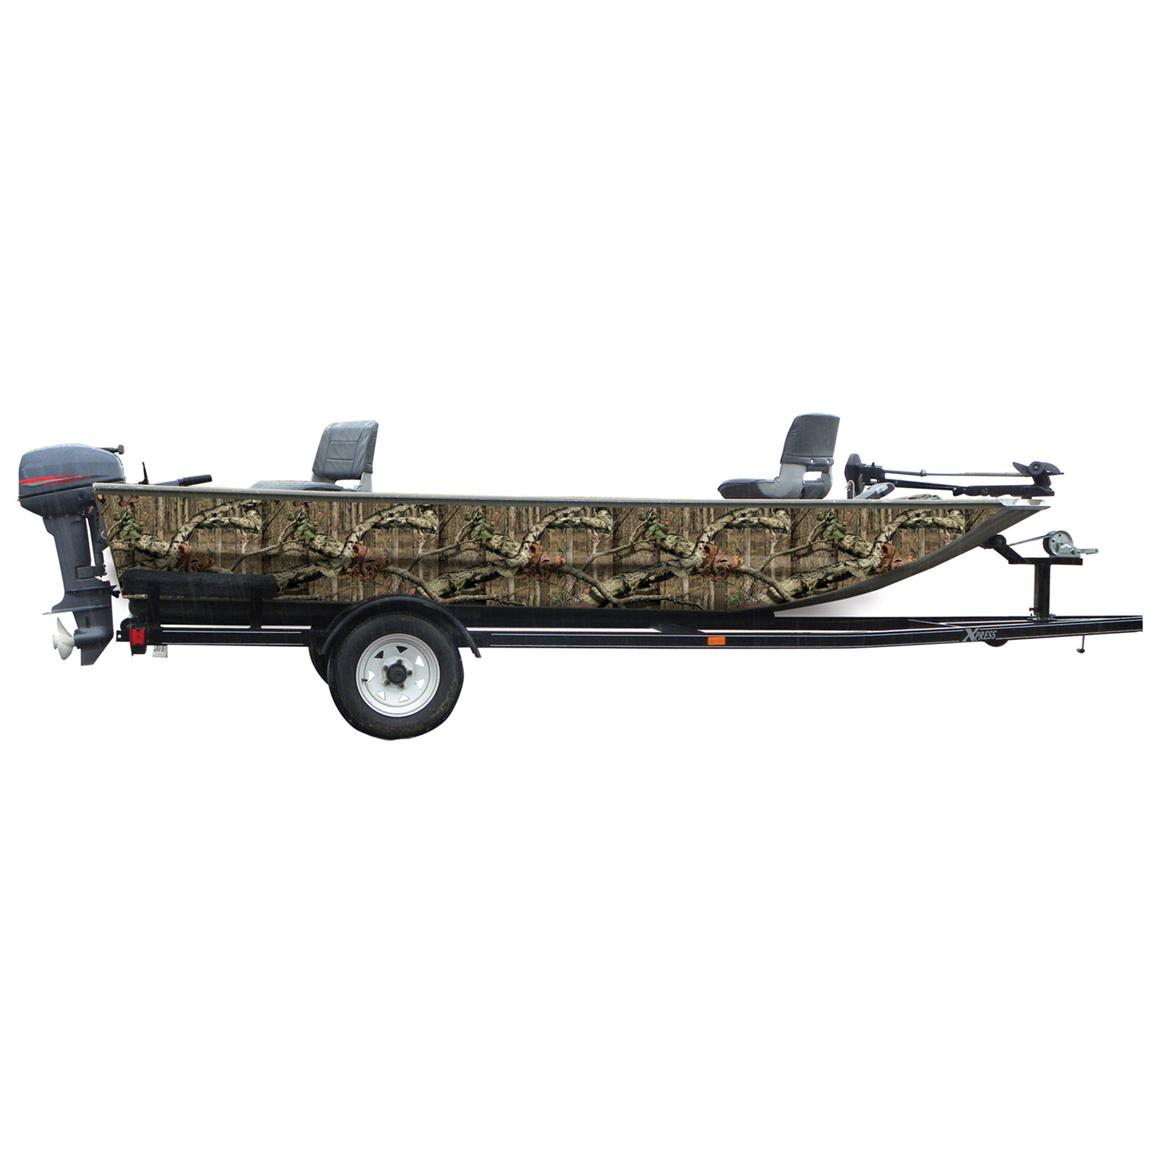 Mossy Oak Graphics® 12 foot Boat Side Camouflage Kit, MOBU Infinity